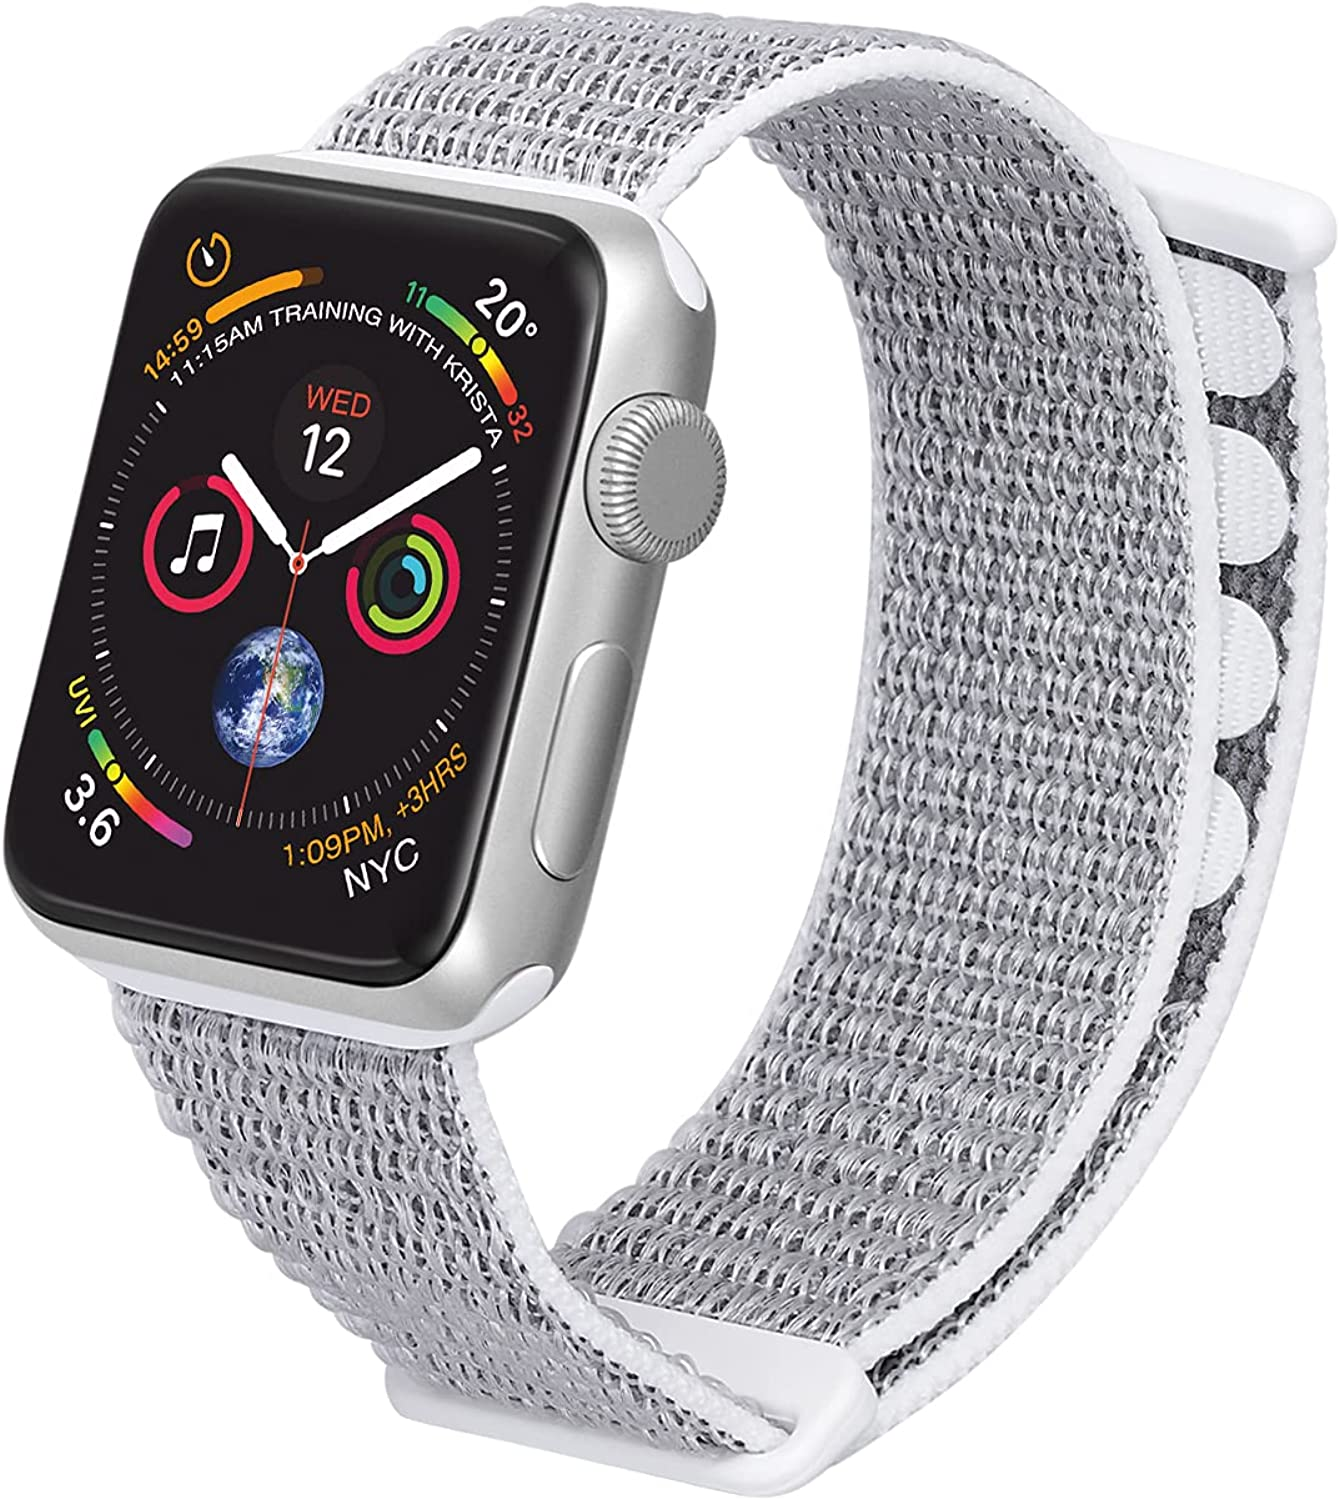 Blueauty Sport Loop Stretchy Strap Compatible with Apple Watch Bands 38mm 40mm 41mm,Nylon Braided Adjustable Replacement Wristbands for Women Men for iwatch Series SE 7 6 5 4 3 2 1